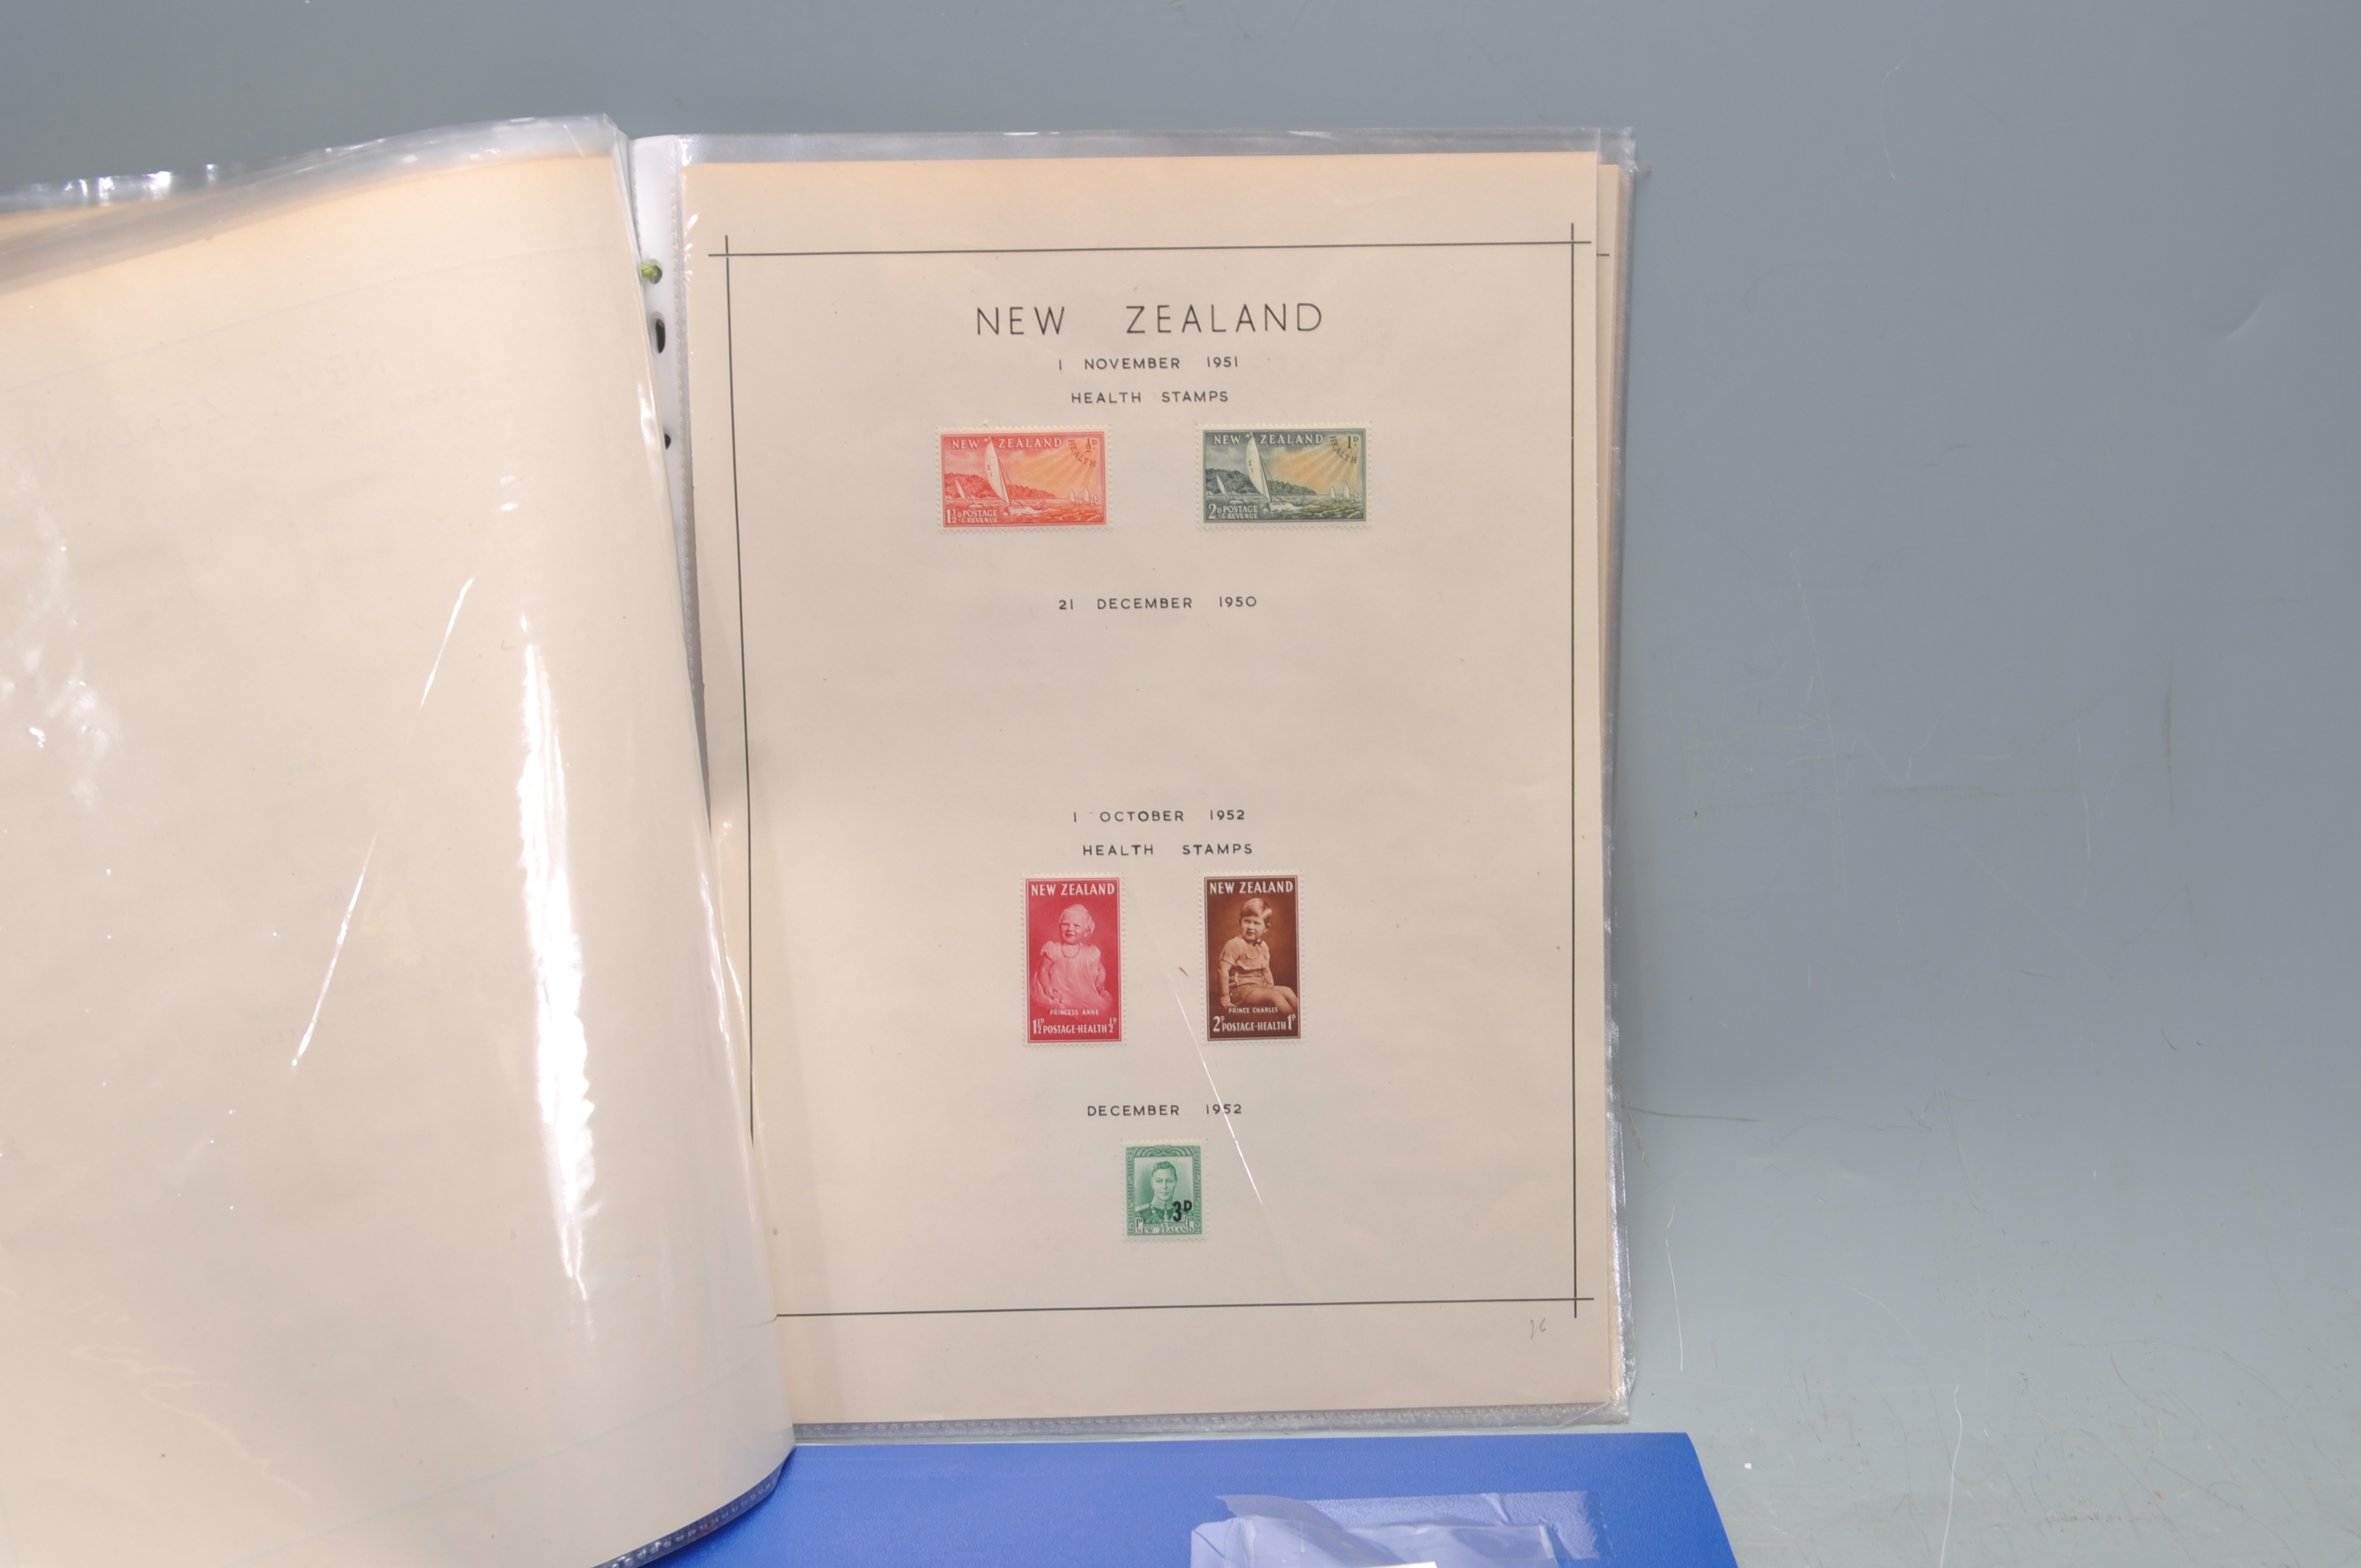 NEW ZEALAND MINT COLLECTION OF POSTAGE STAMPS - Image 6 of 8